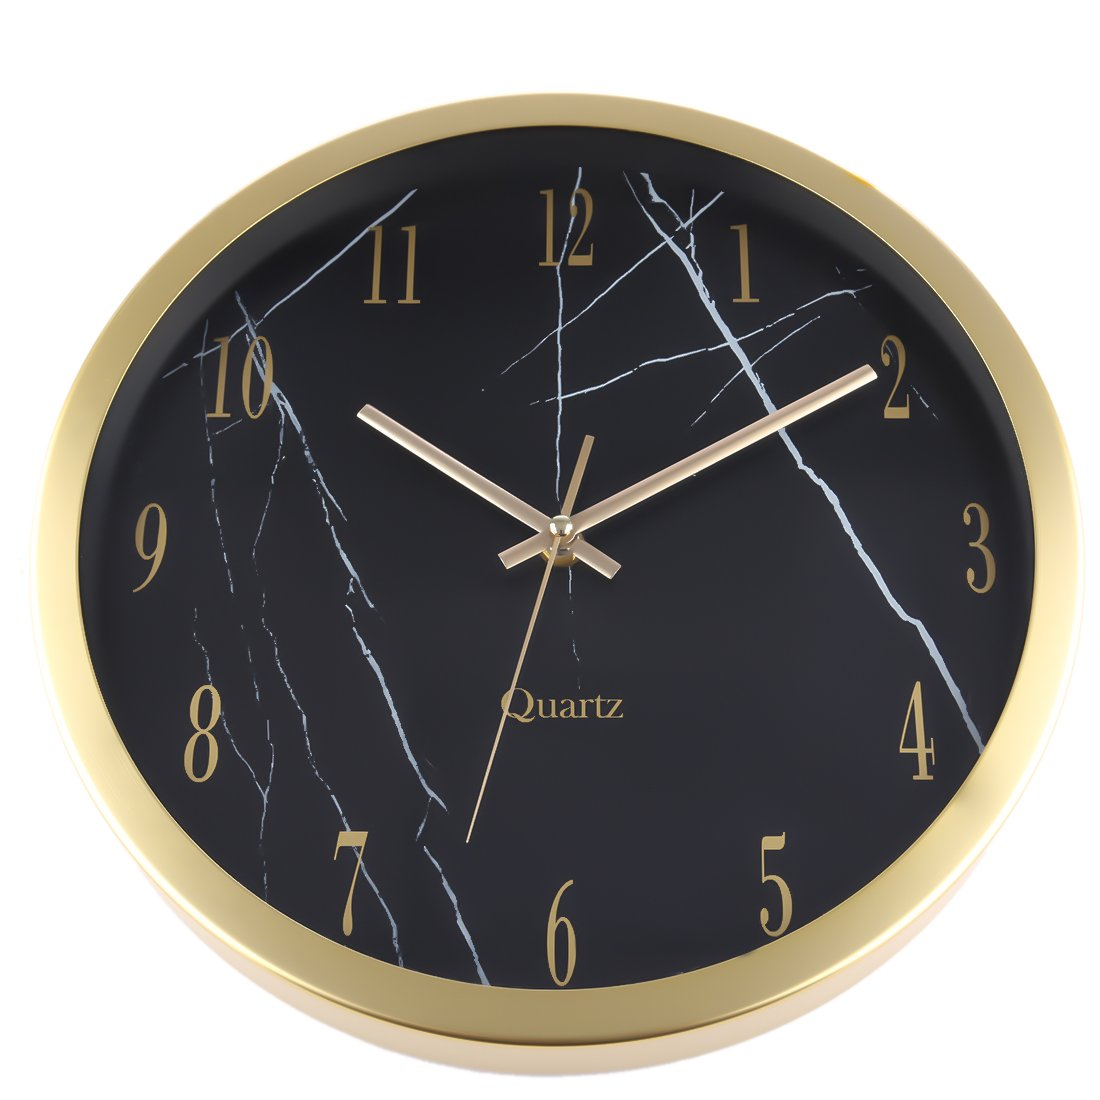 Foxom 12 Inch Modern Silent Wall Clock Non Ticking Bedroom Wall Clock with Aluminum Alloy Frame Golden Marble Texture Wall Clock